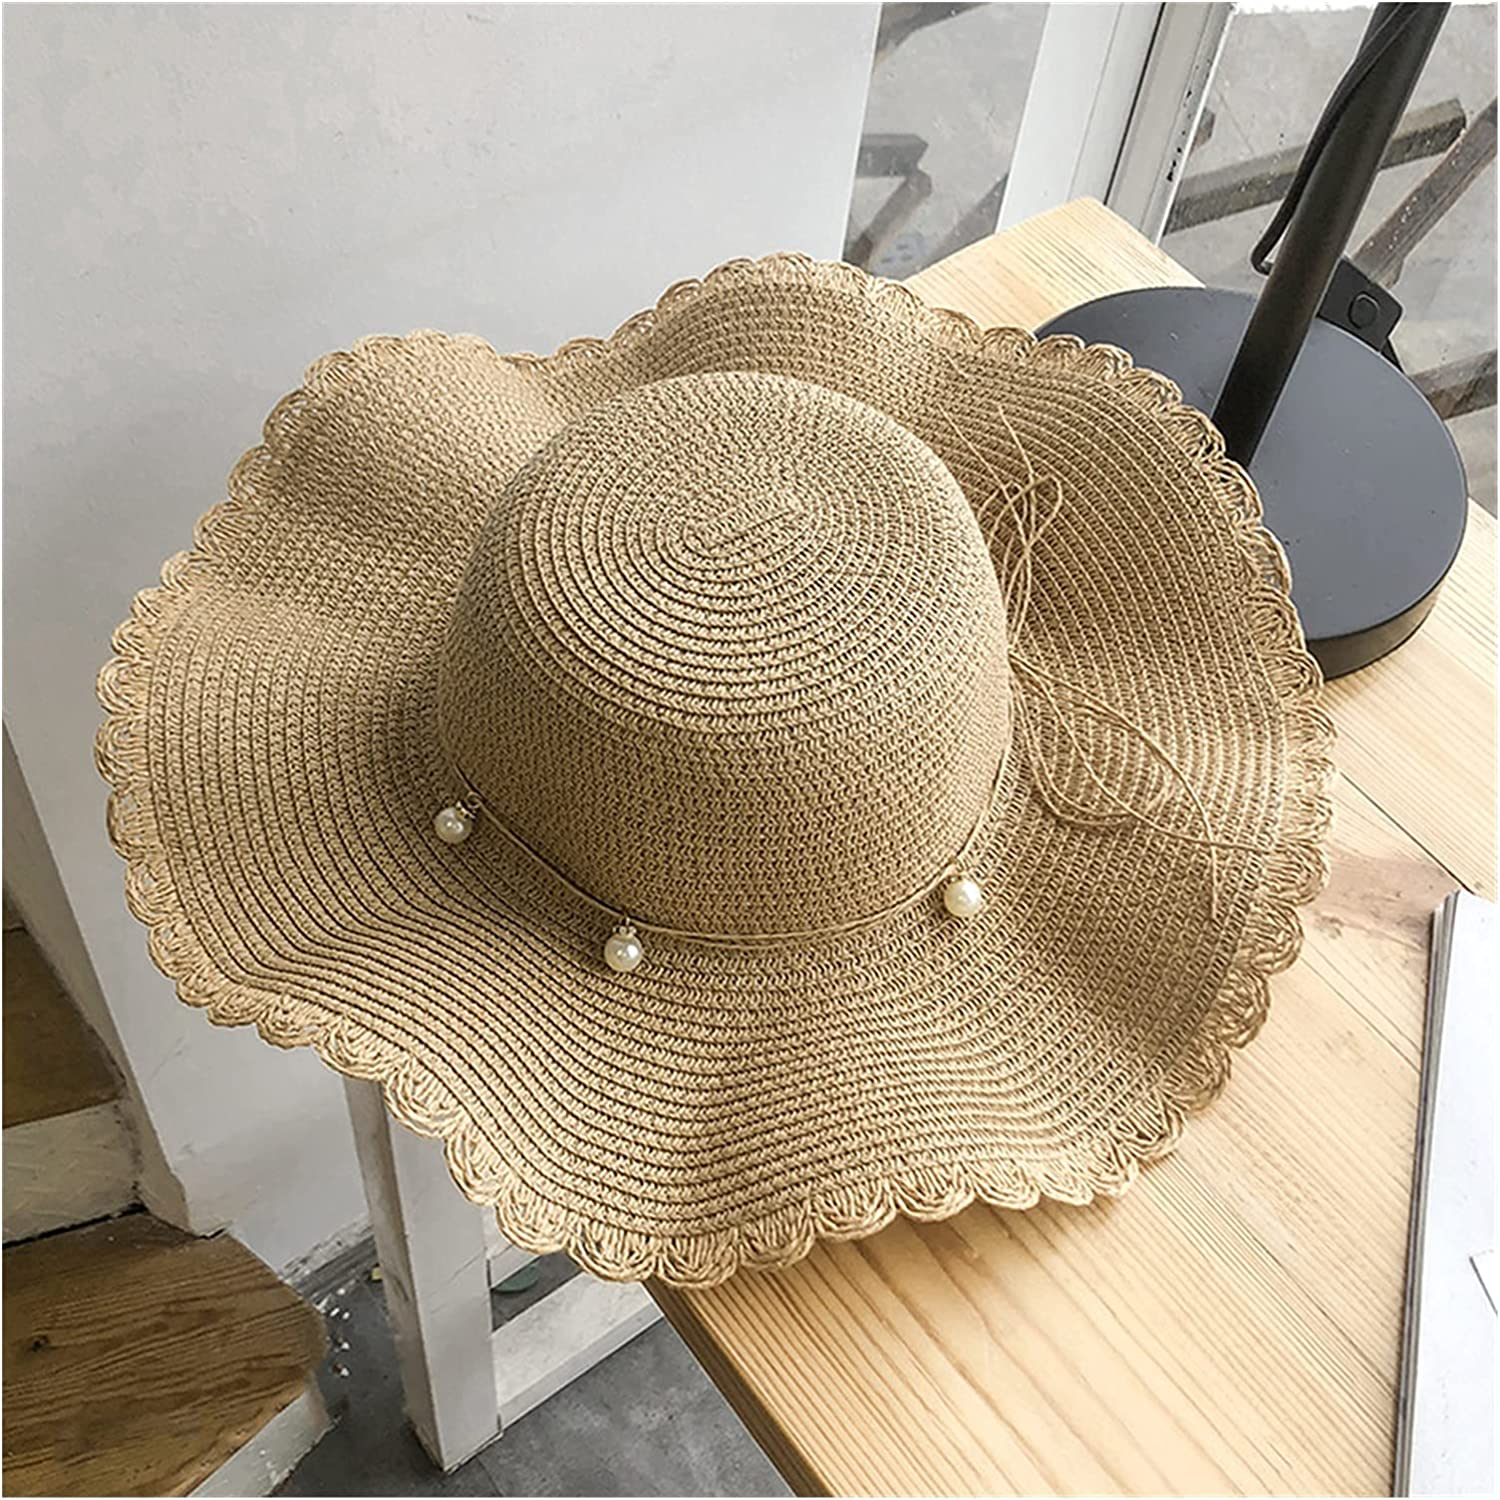 Sun hat Lady Wide Max 43% OFF Brim Straw Outlet sale feature Foldable Floppy Hat Cap Summer Roll